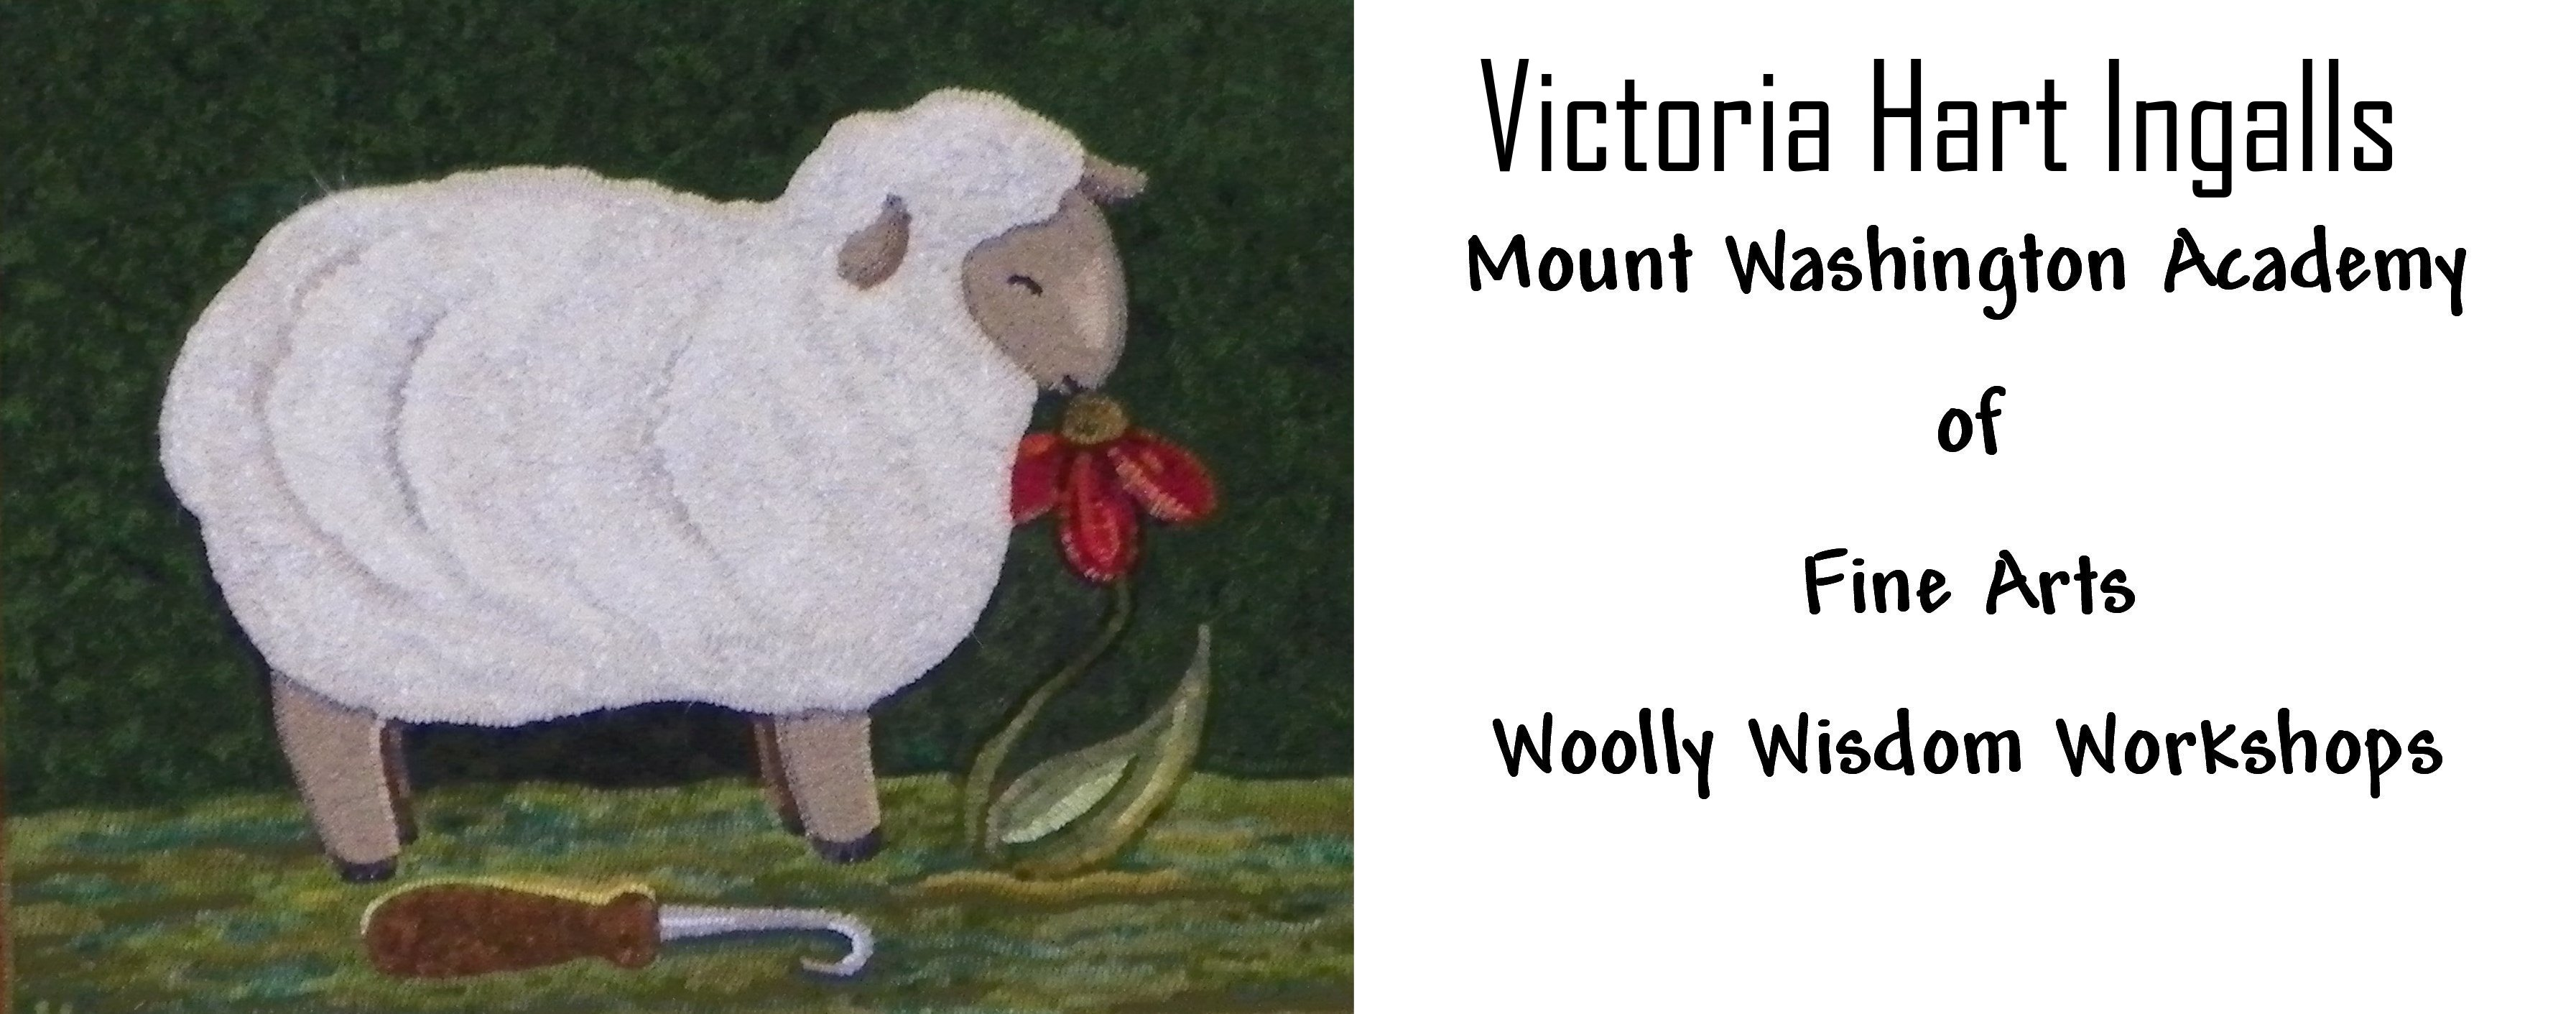 The Mt  Washington Academy of Fine Arts  Woolly Wisdom Workshop